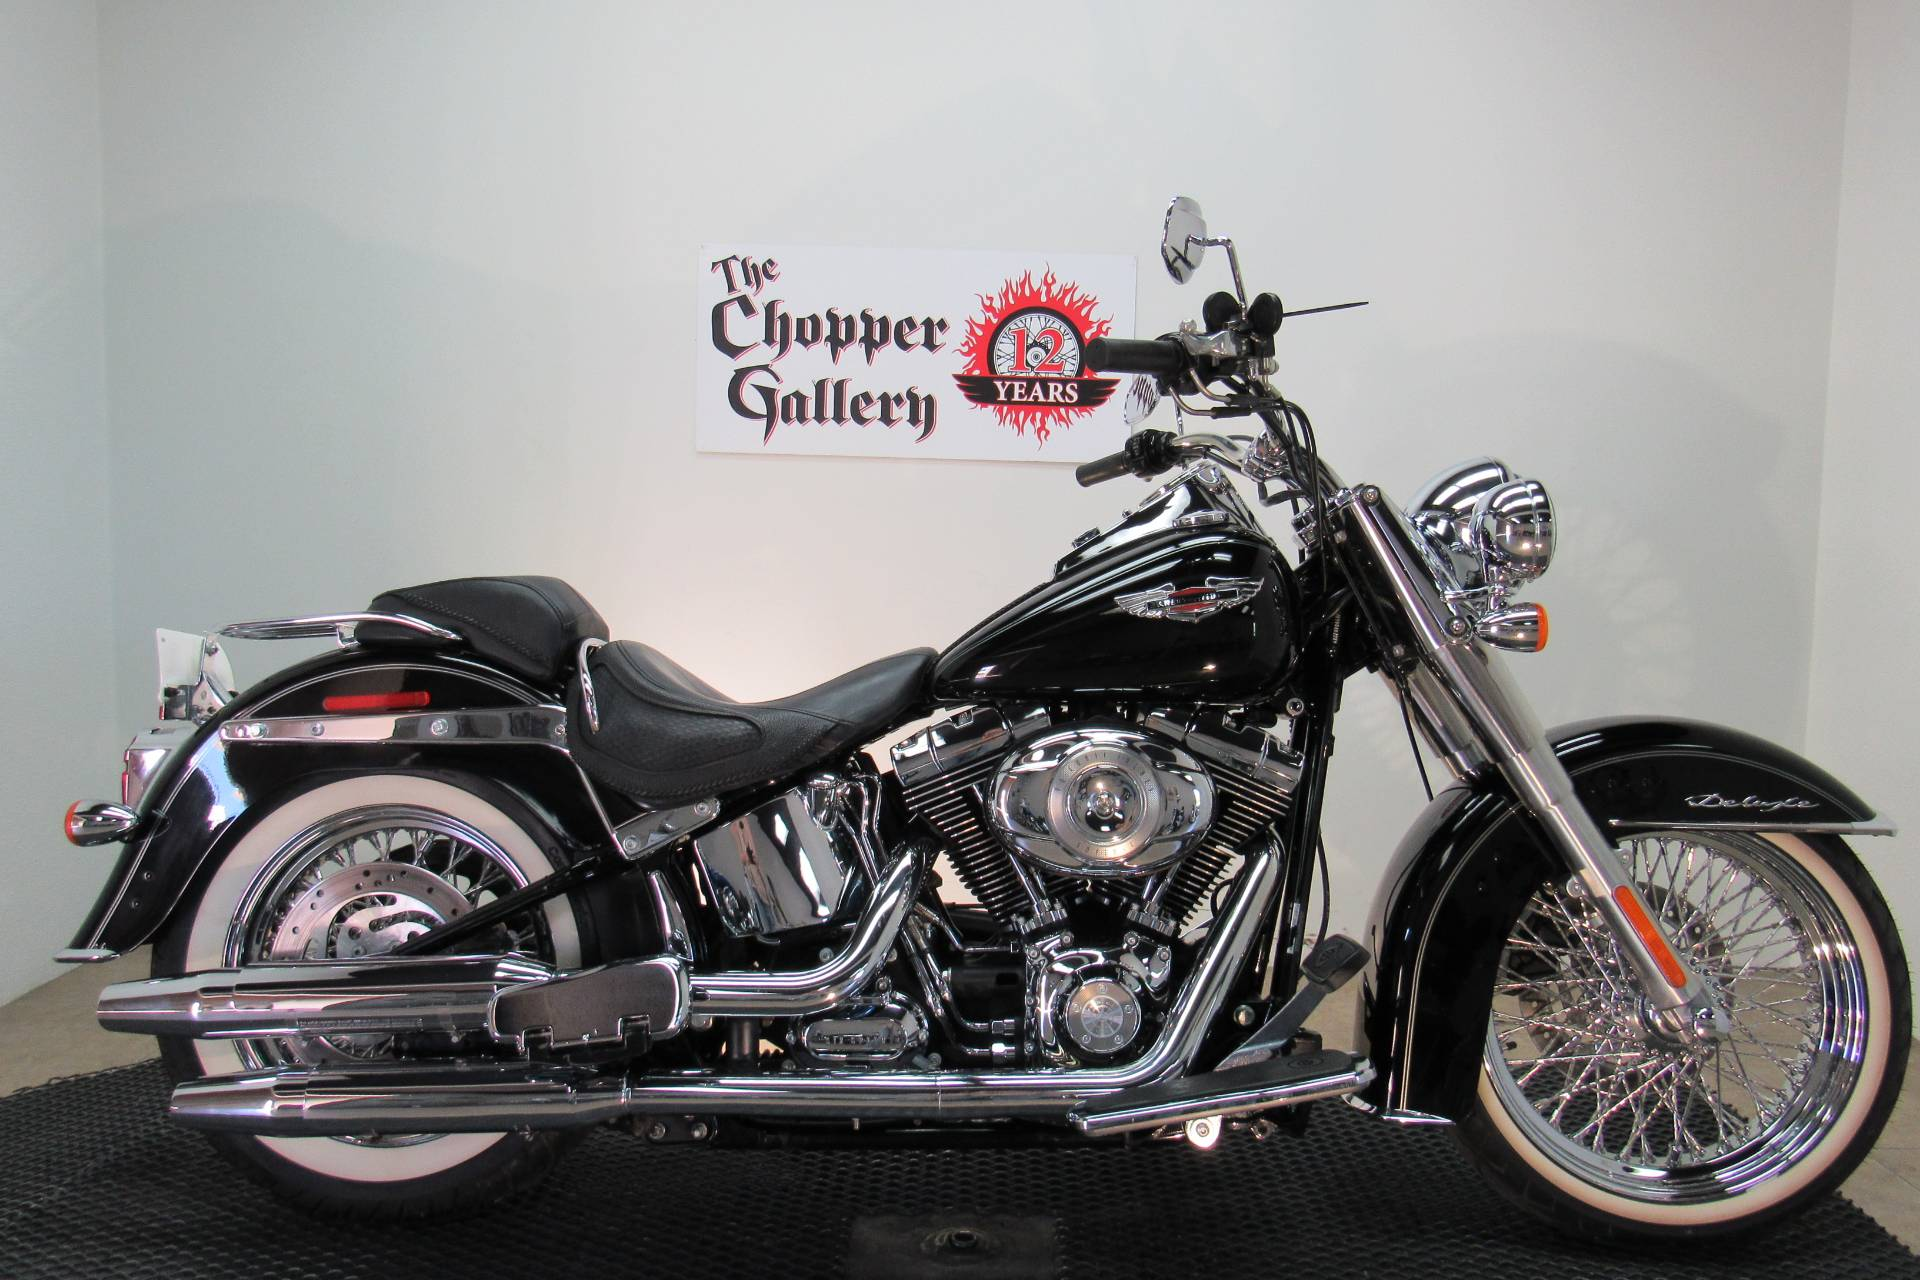 2009 Harley-Davidson Softail Deluxe in Temecula, California - Photo 1